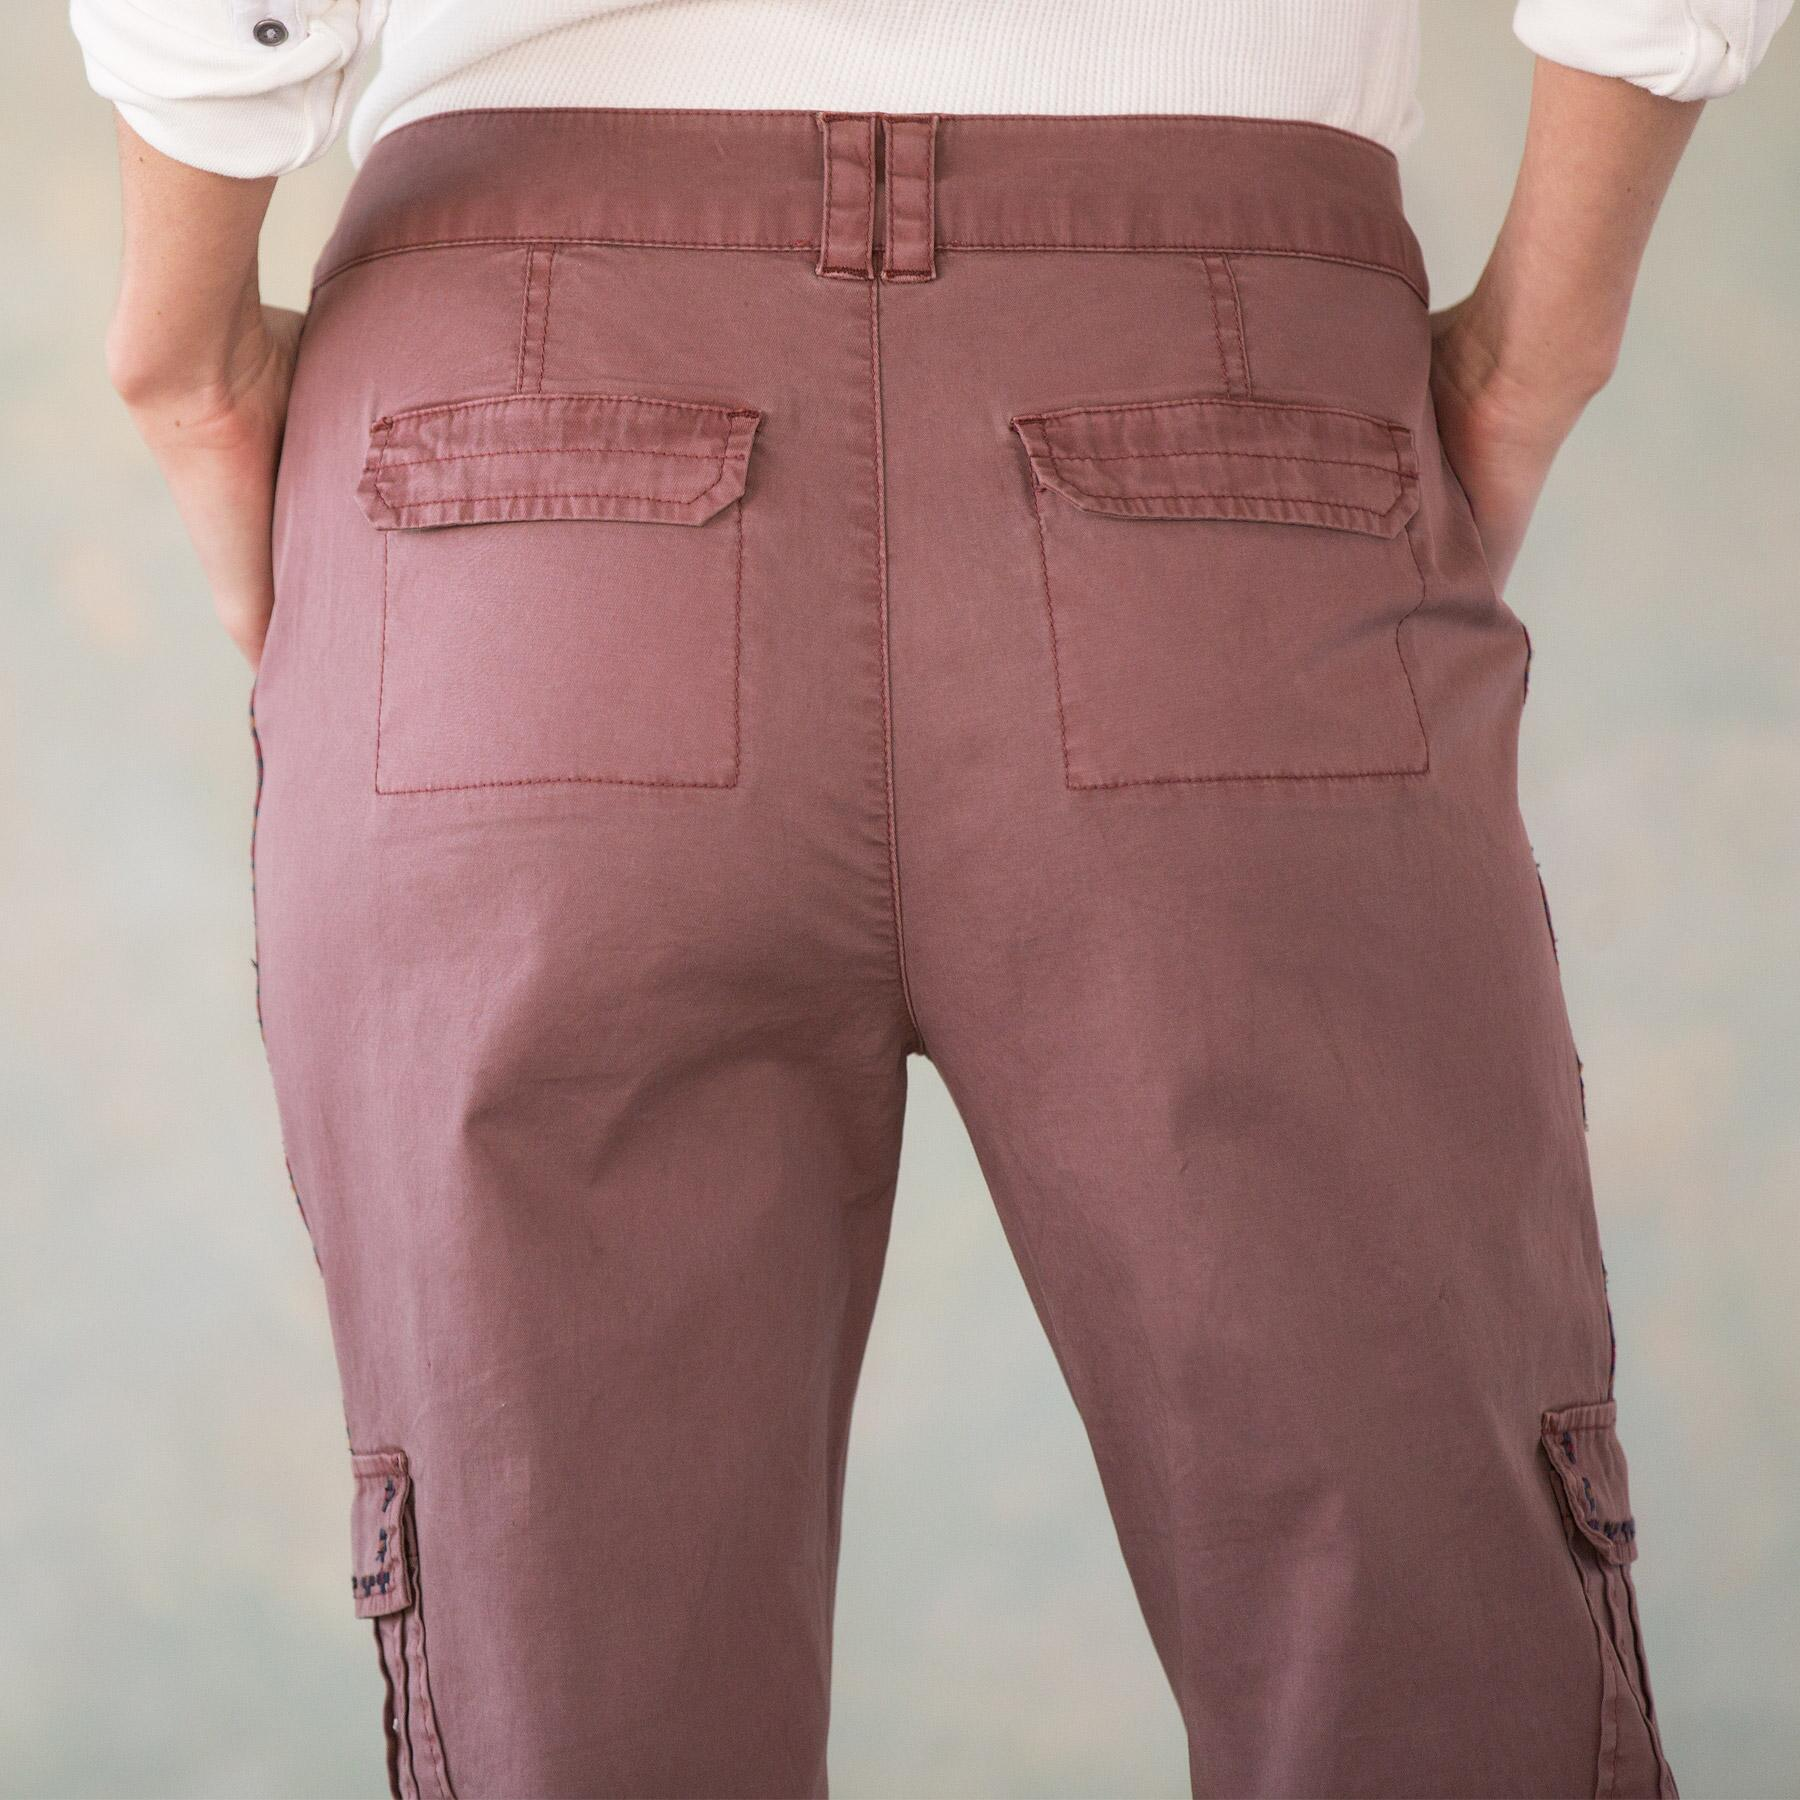 EVEN MORE CARGO PANTS: View 5